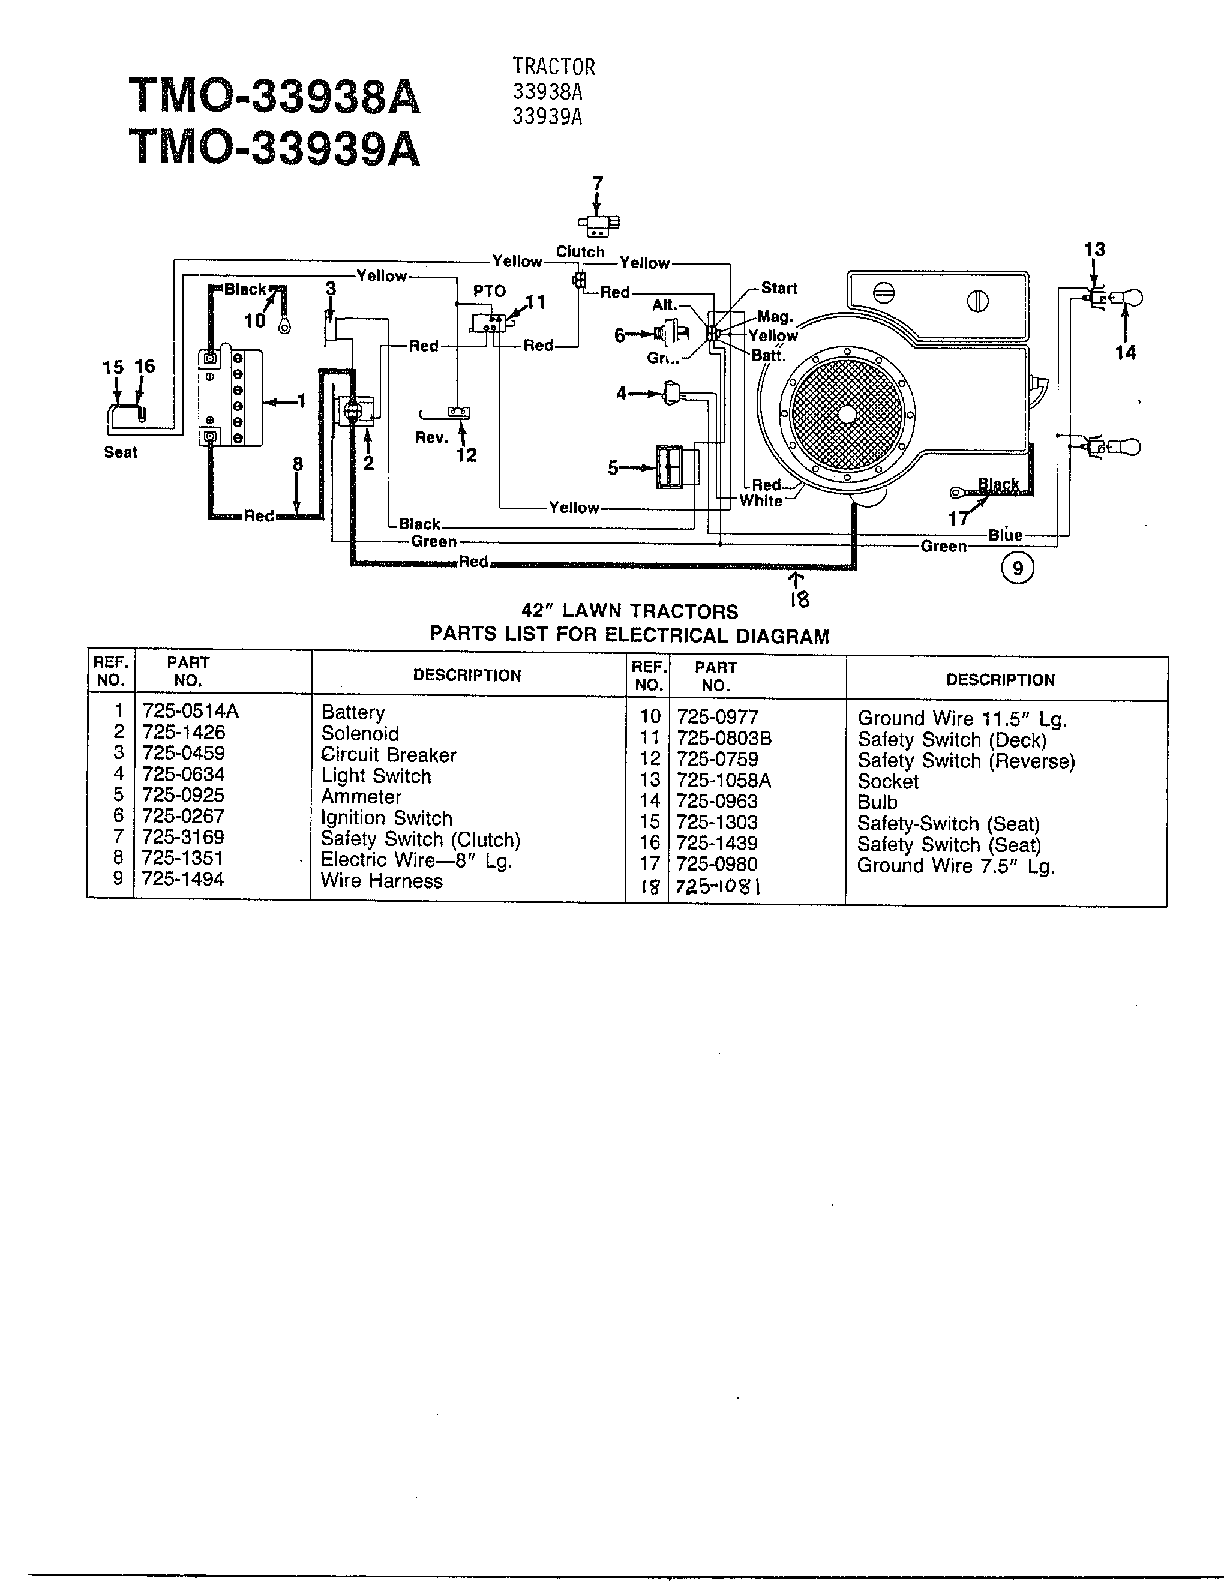 hight resolution of mtd wiring schematic wiring diagrams monmtd wiring diagram wiring diagram mtd model 33938a lawn tractor